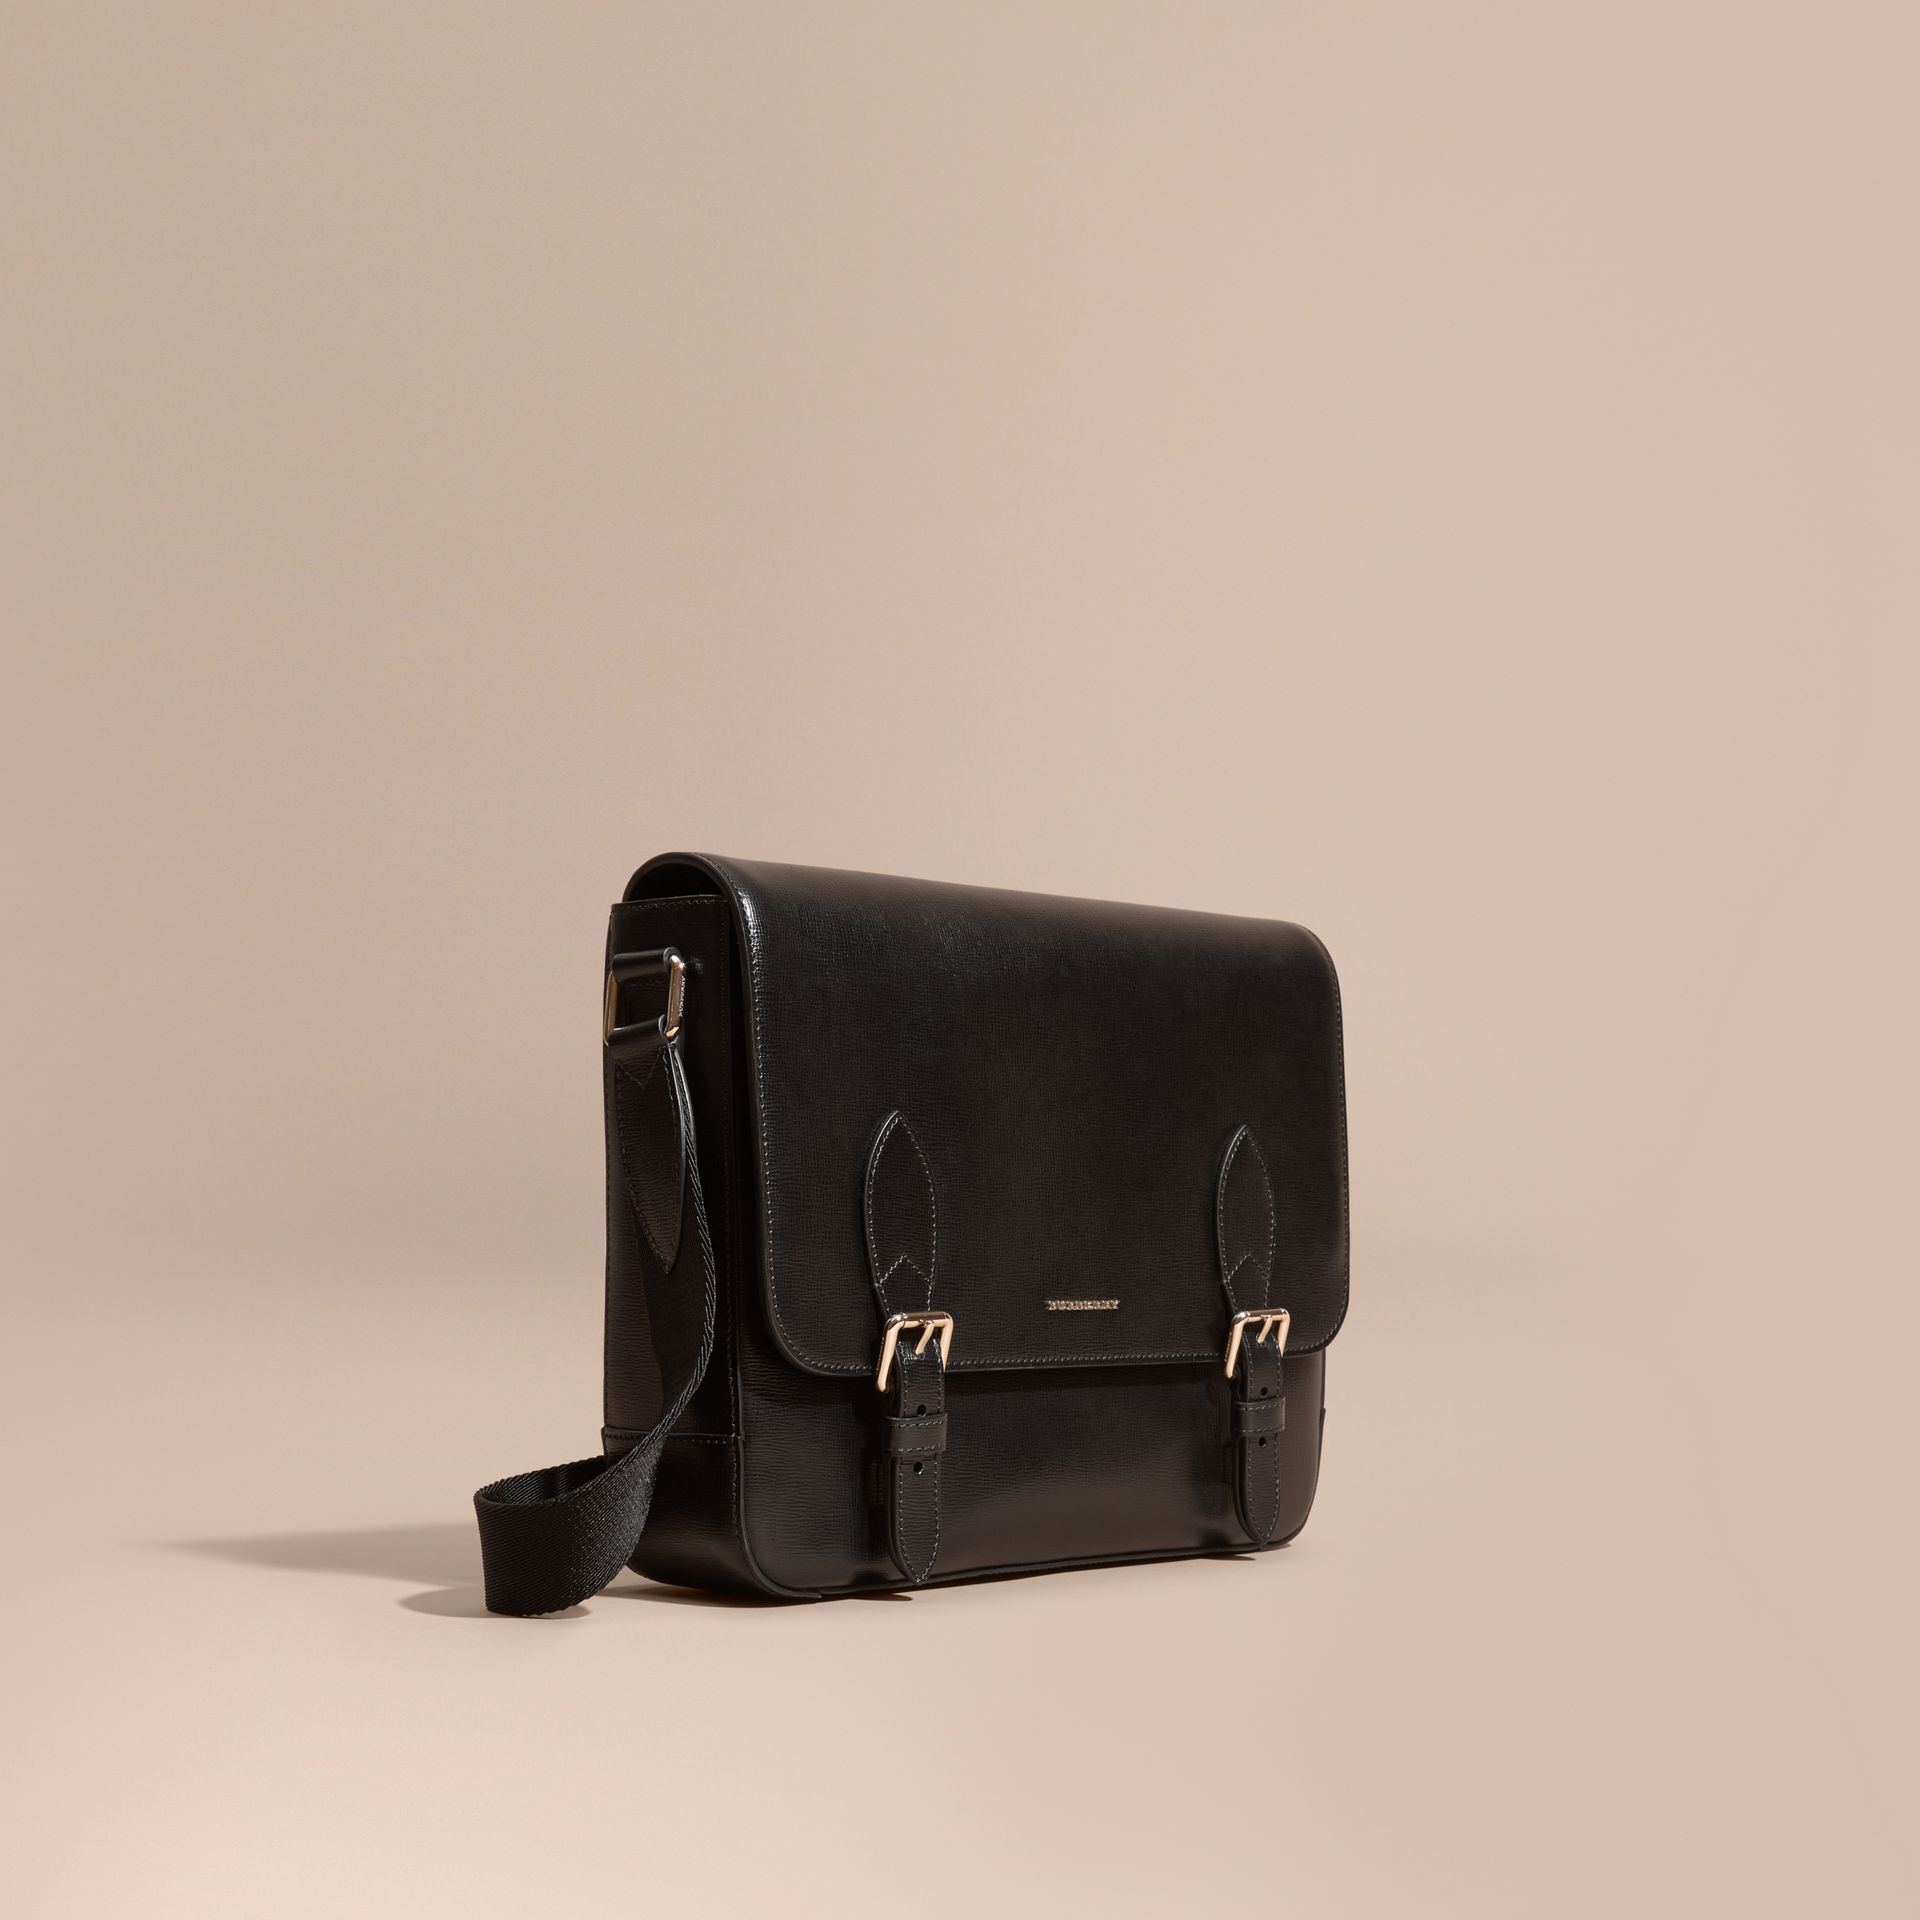 Medium London Leather Messenger Bag in Black - gallery image 1